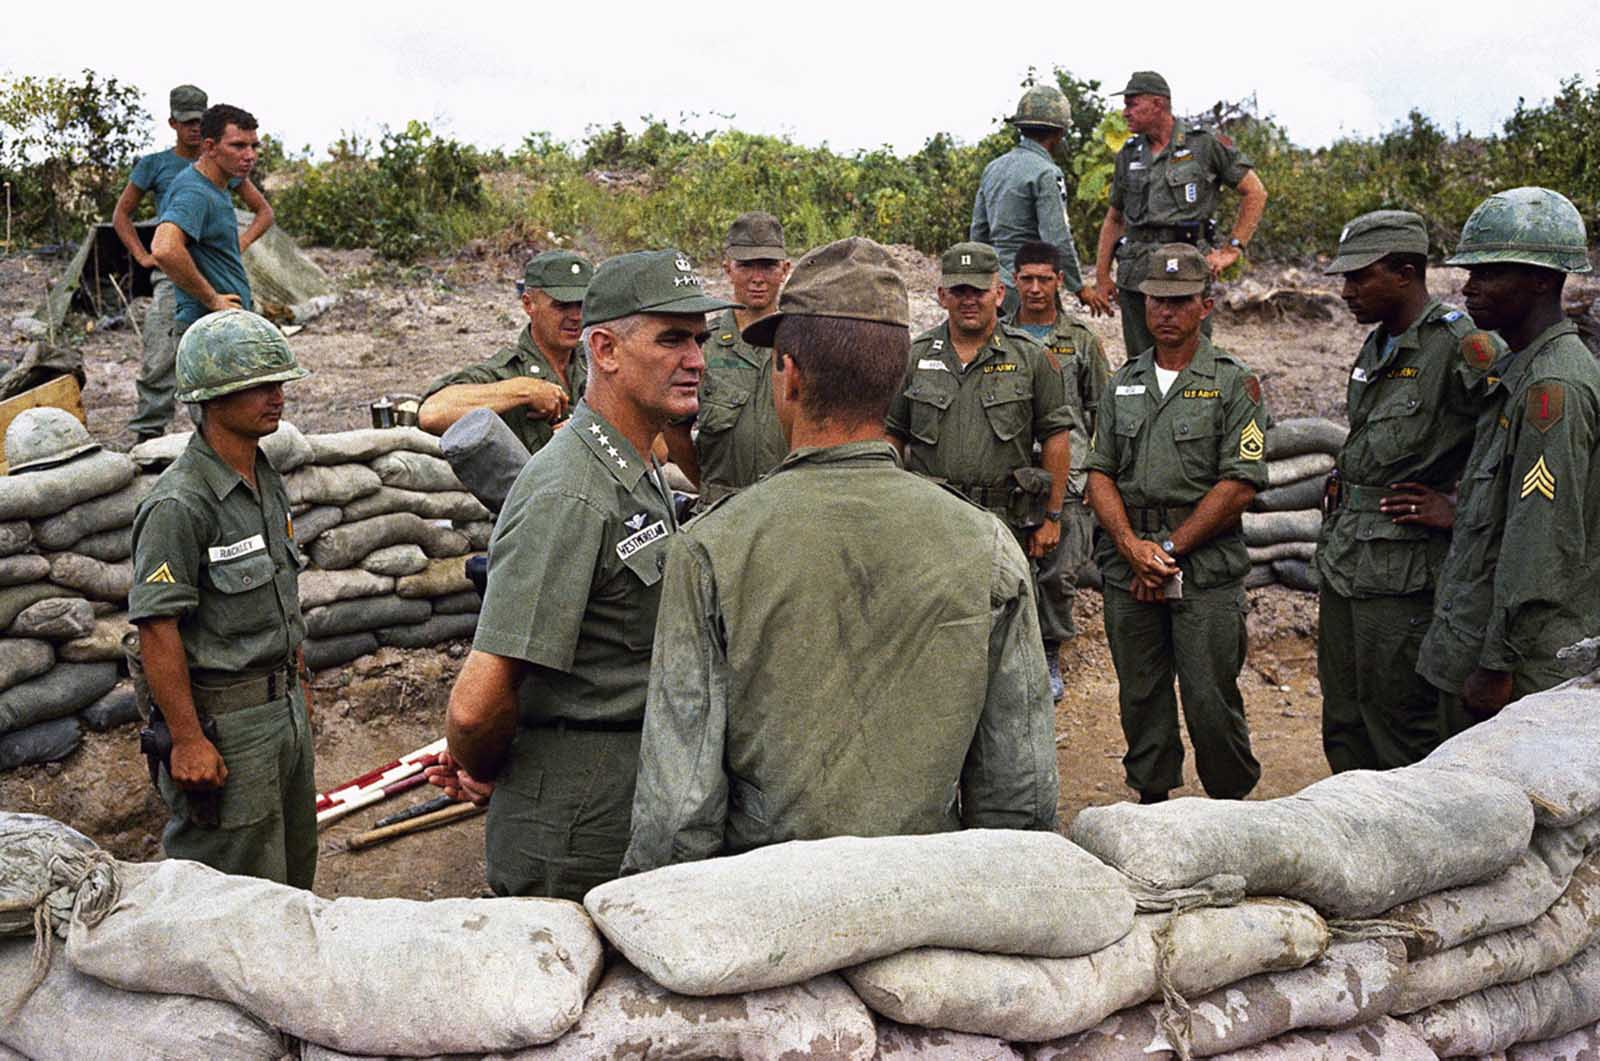 General William Westmoreland talks with troops of first battalion, 16th regiment of 2nd brigade of U.S. First Division at their positions near Bien Hoa in Vietnam, in 1965.